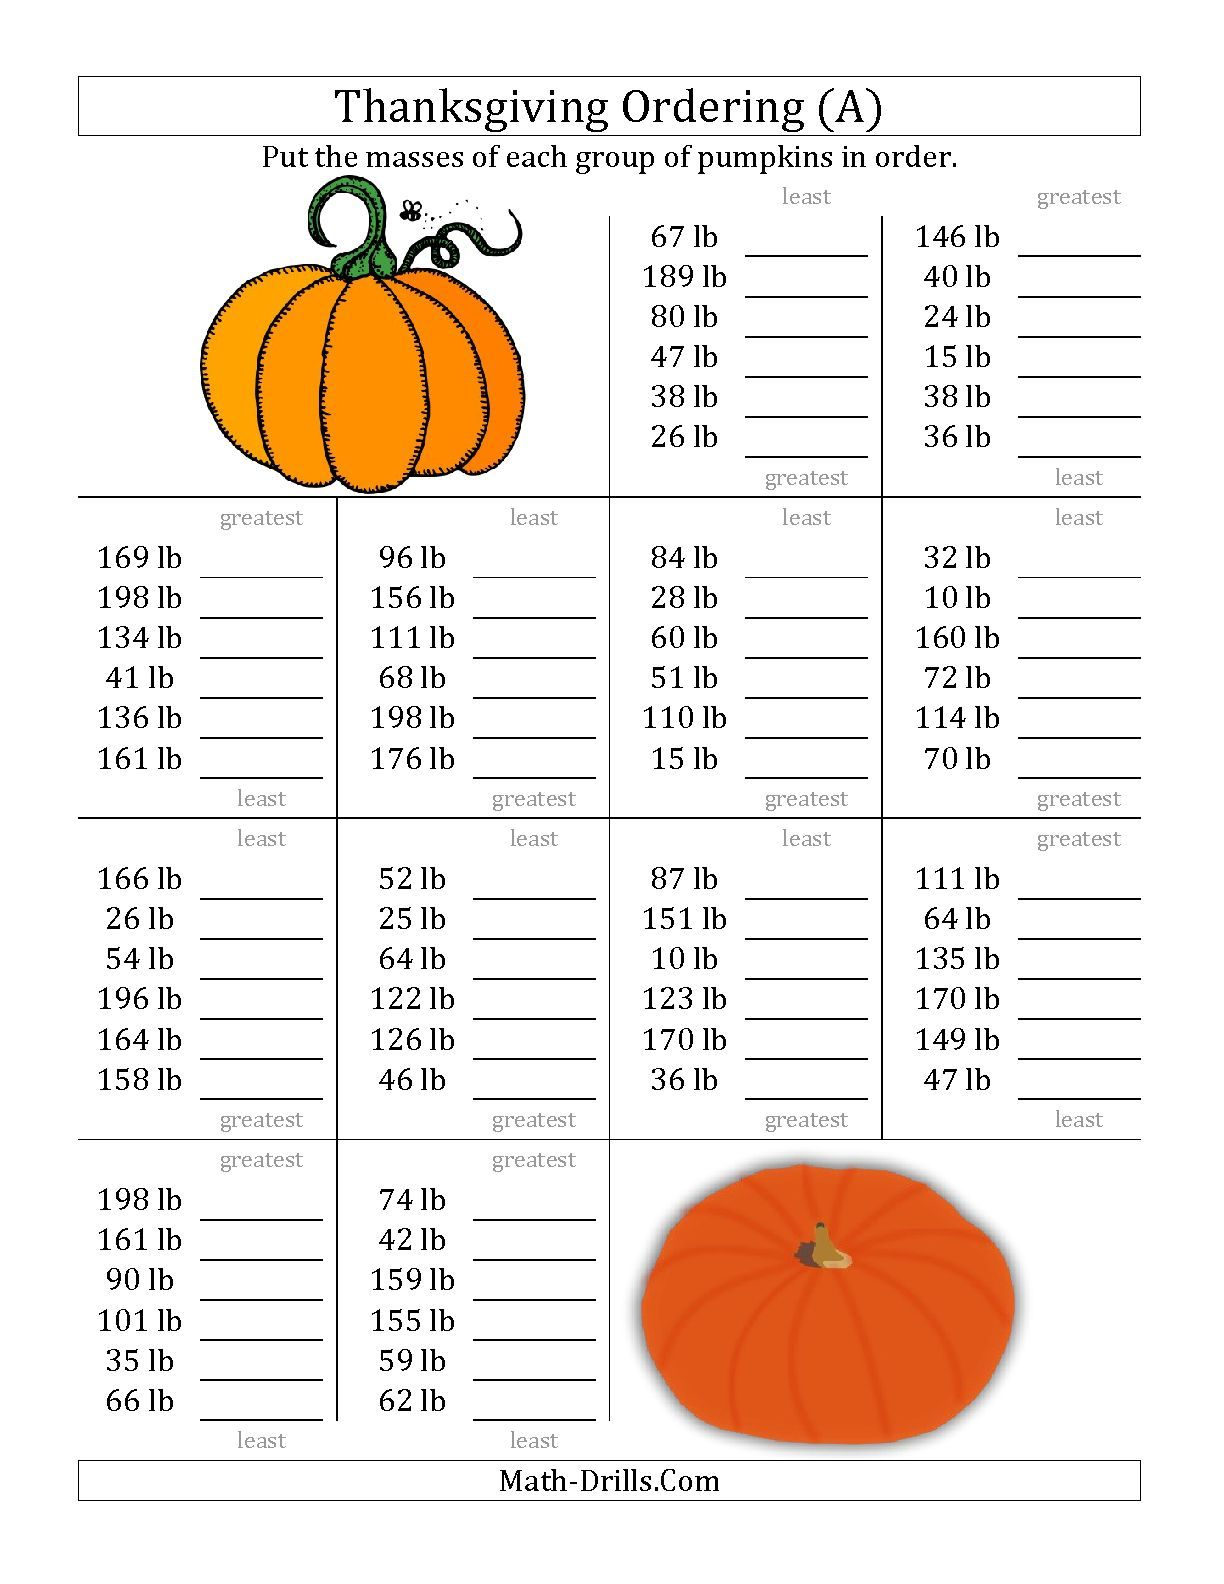 The Ordering Pumpkin Masses In Pounds A Math Worksheet From The Thanksgiving Math Worksh Thanksgiving Math Worksheets Thanksgiving Worksheets Math Worksheets